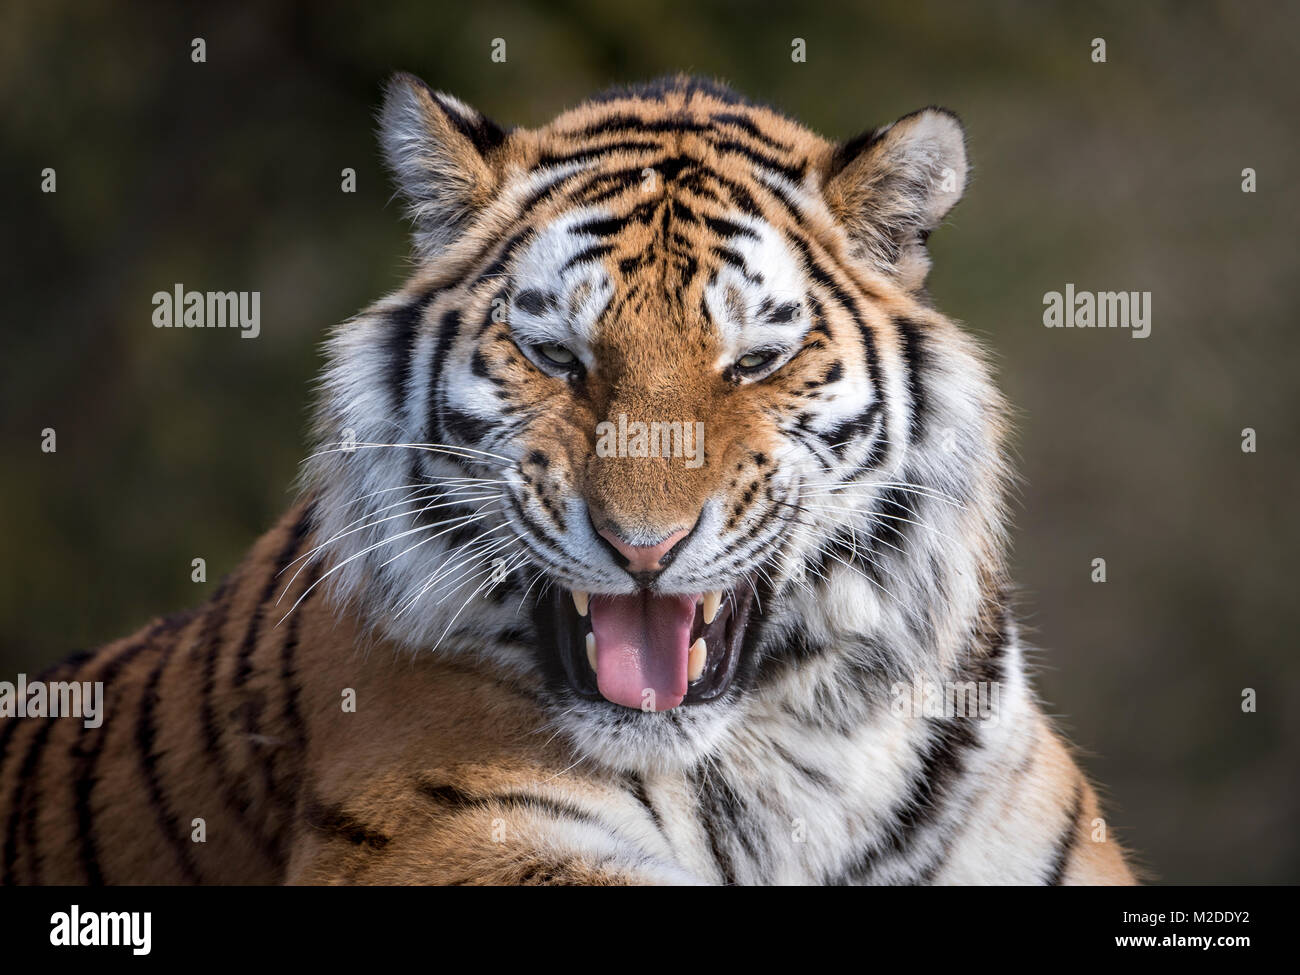 Female Amur tiger grinning - Stock Image